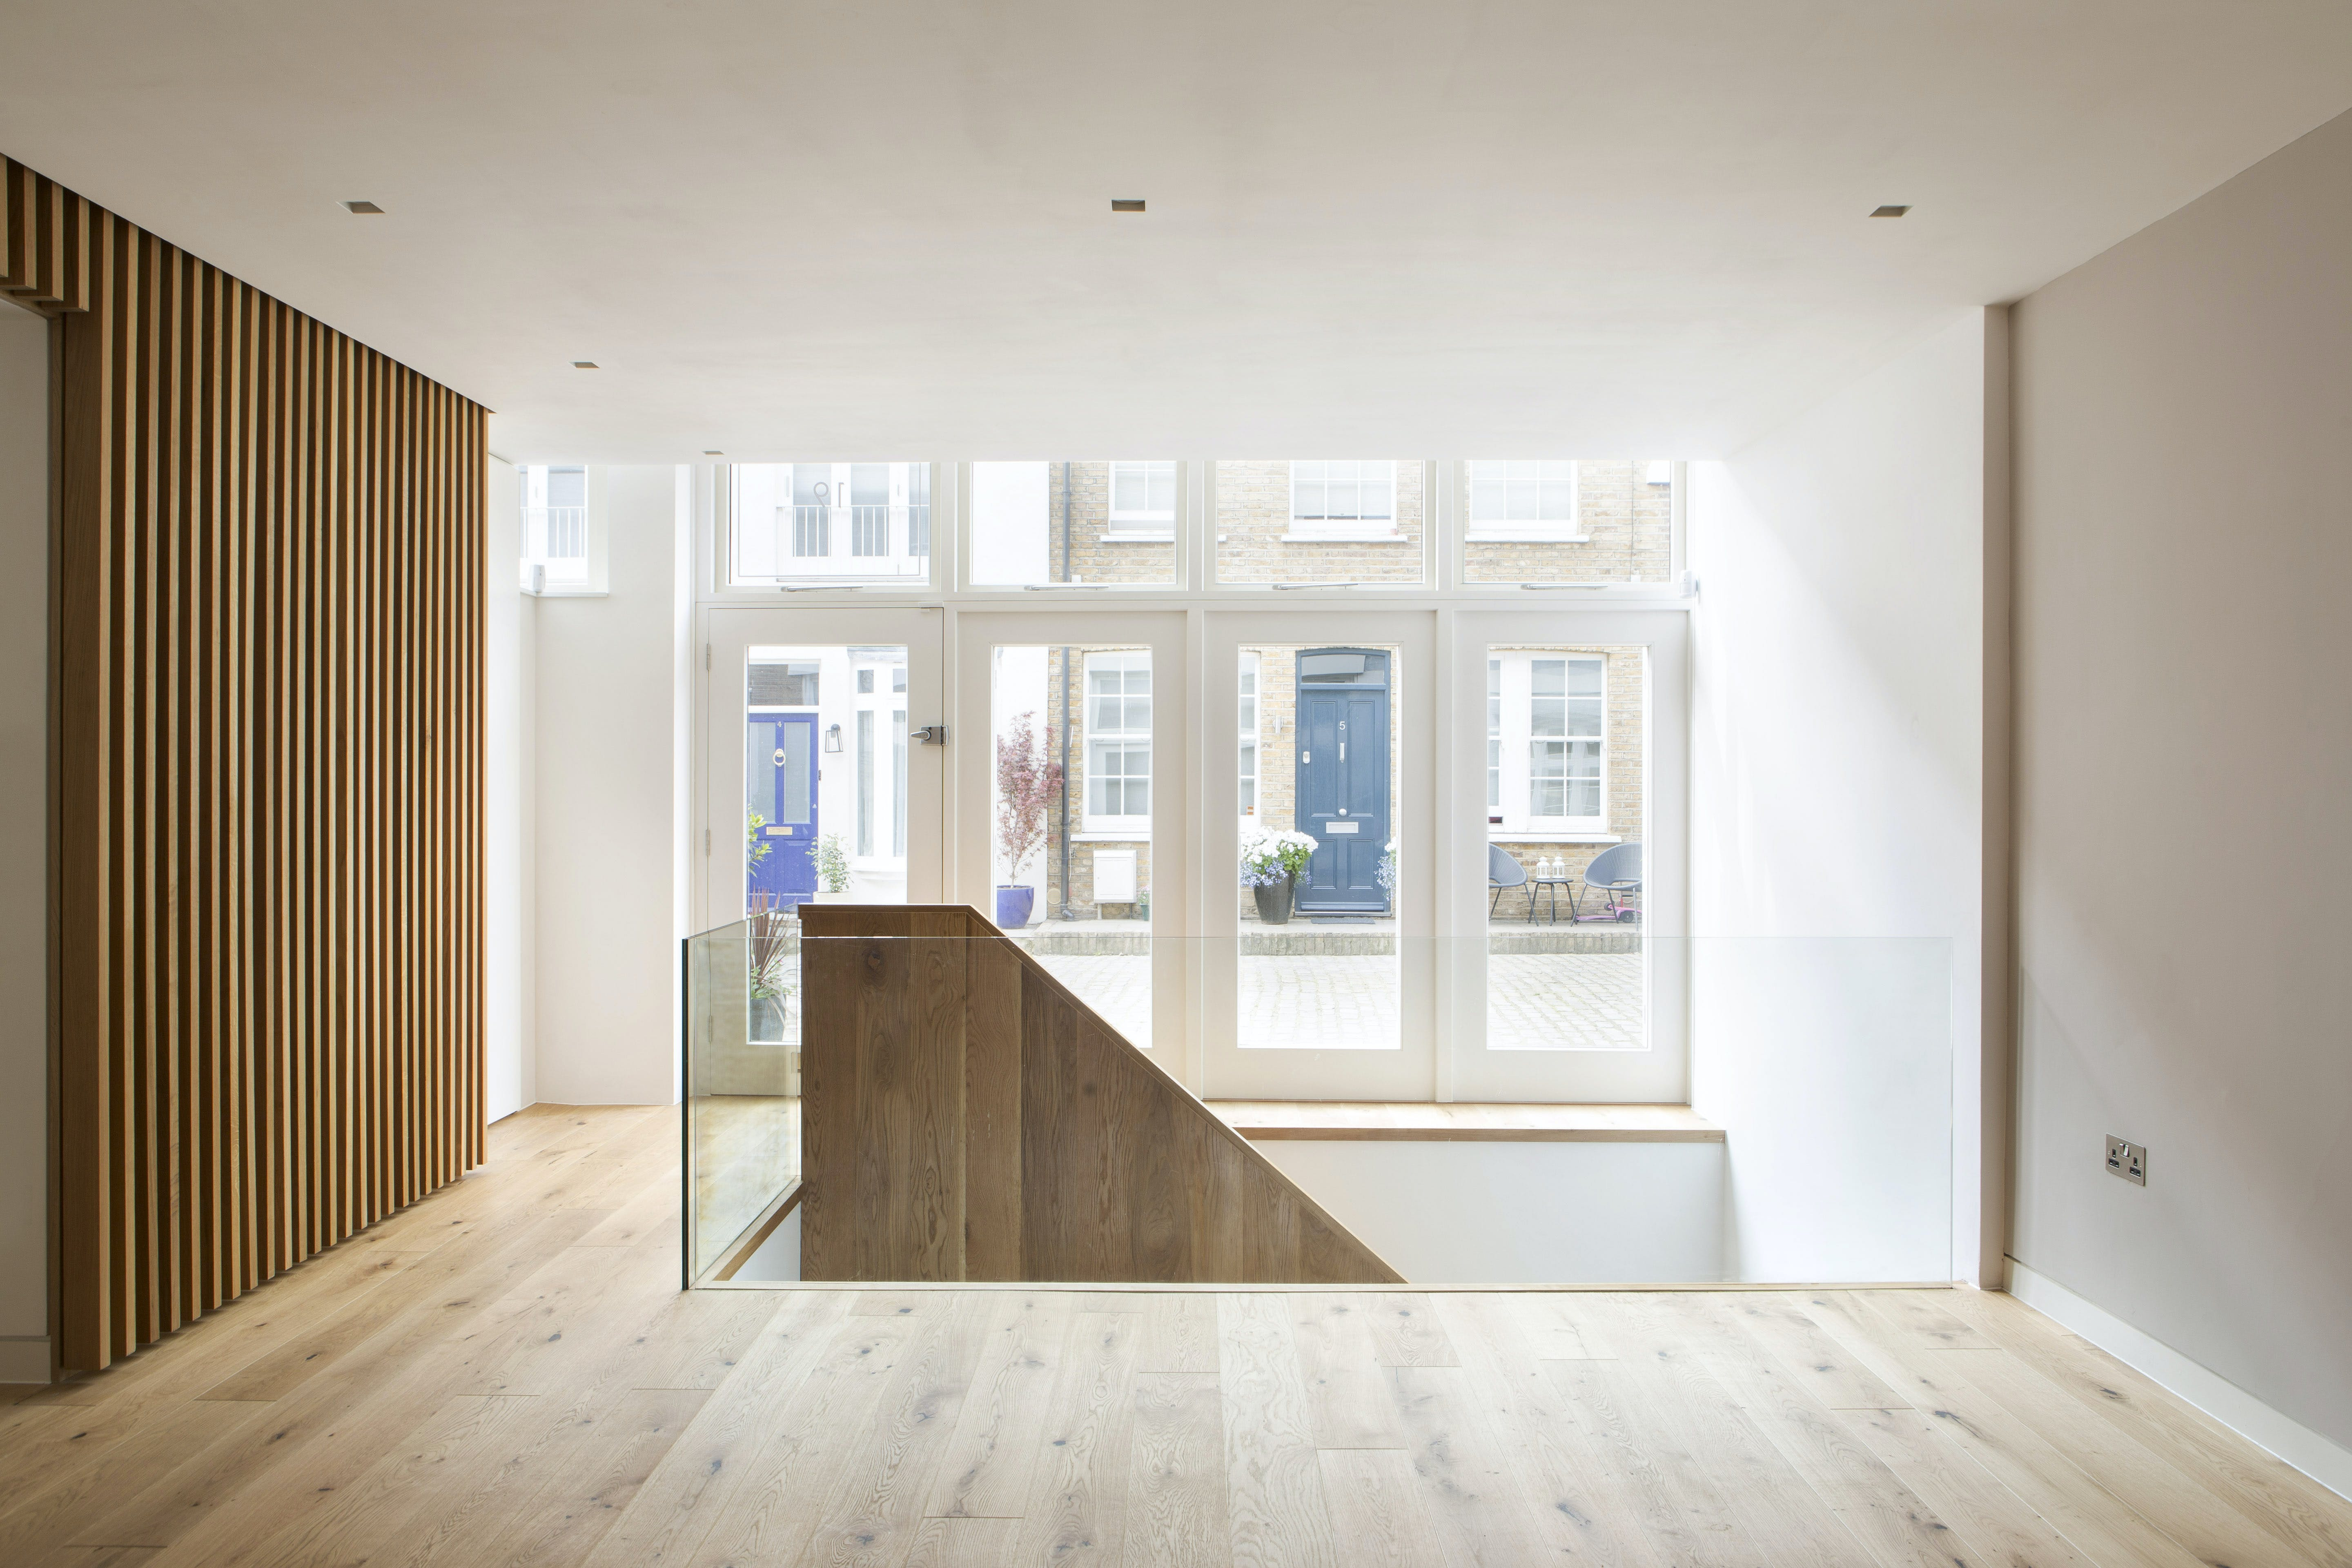 Neil Tomlinson Architects Wins Residential Interiors Gold At London Design Awards 2019 For Princes Mews Project Neil Tomlinson Architects Archinect